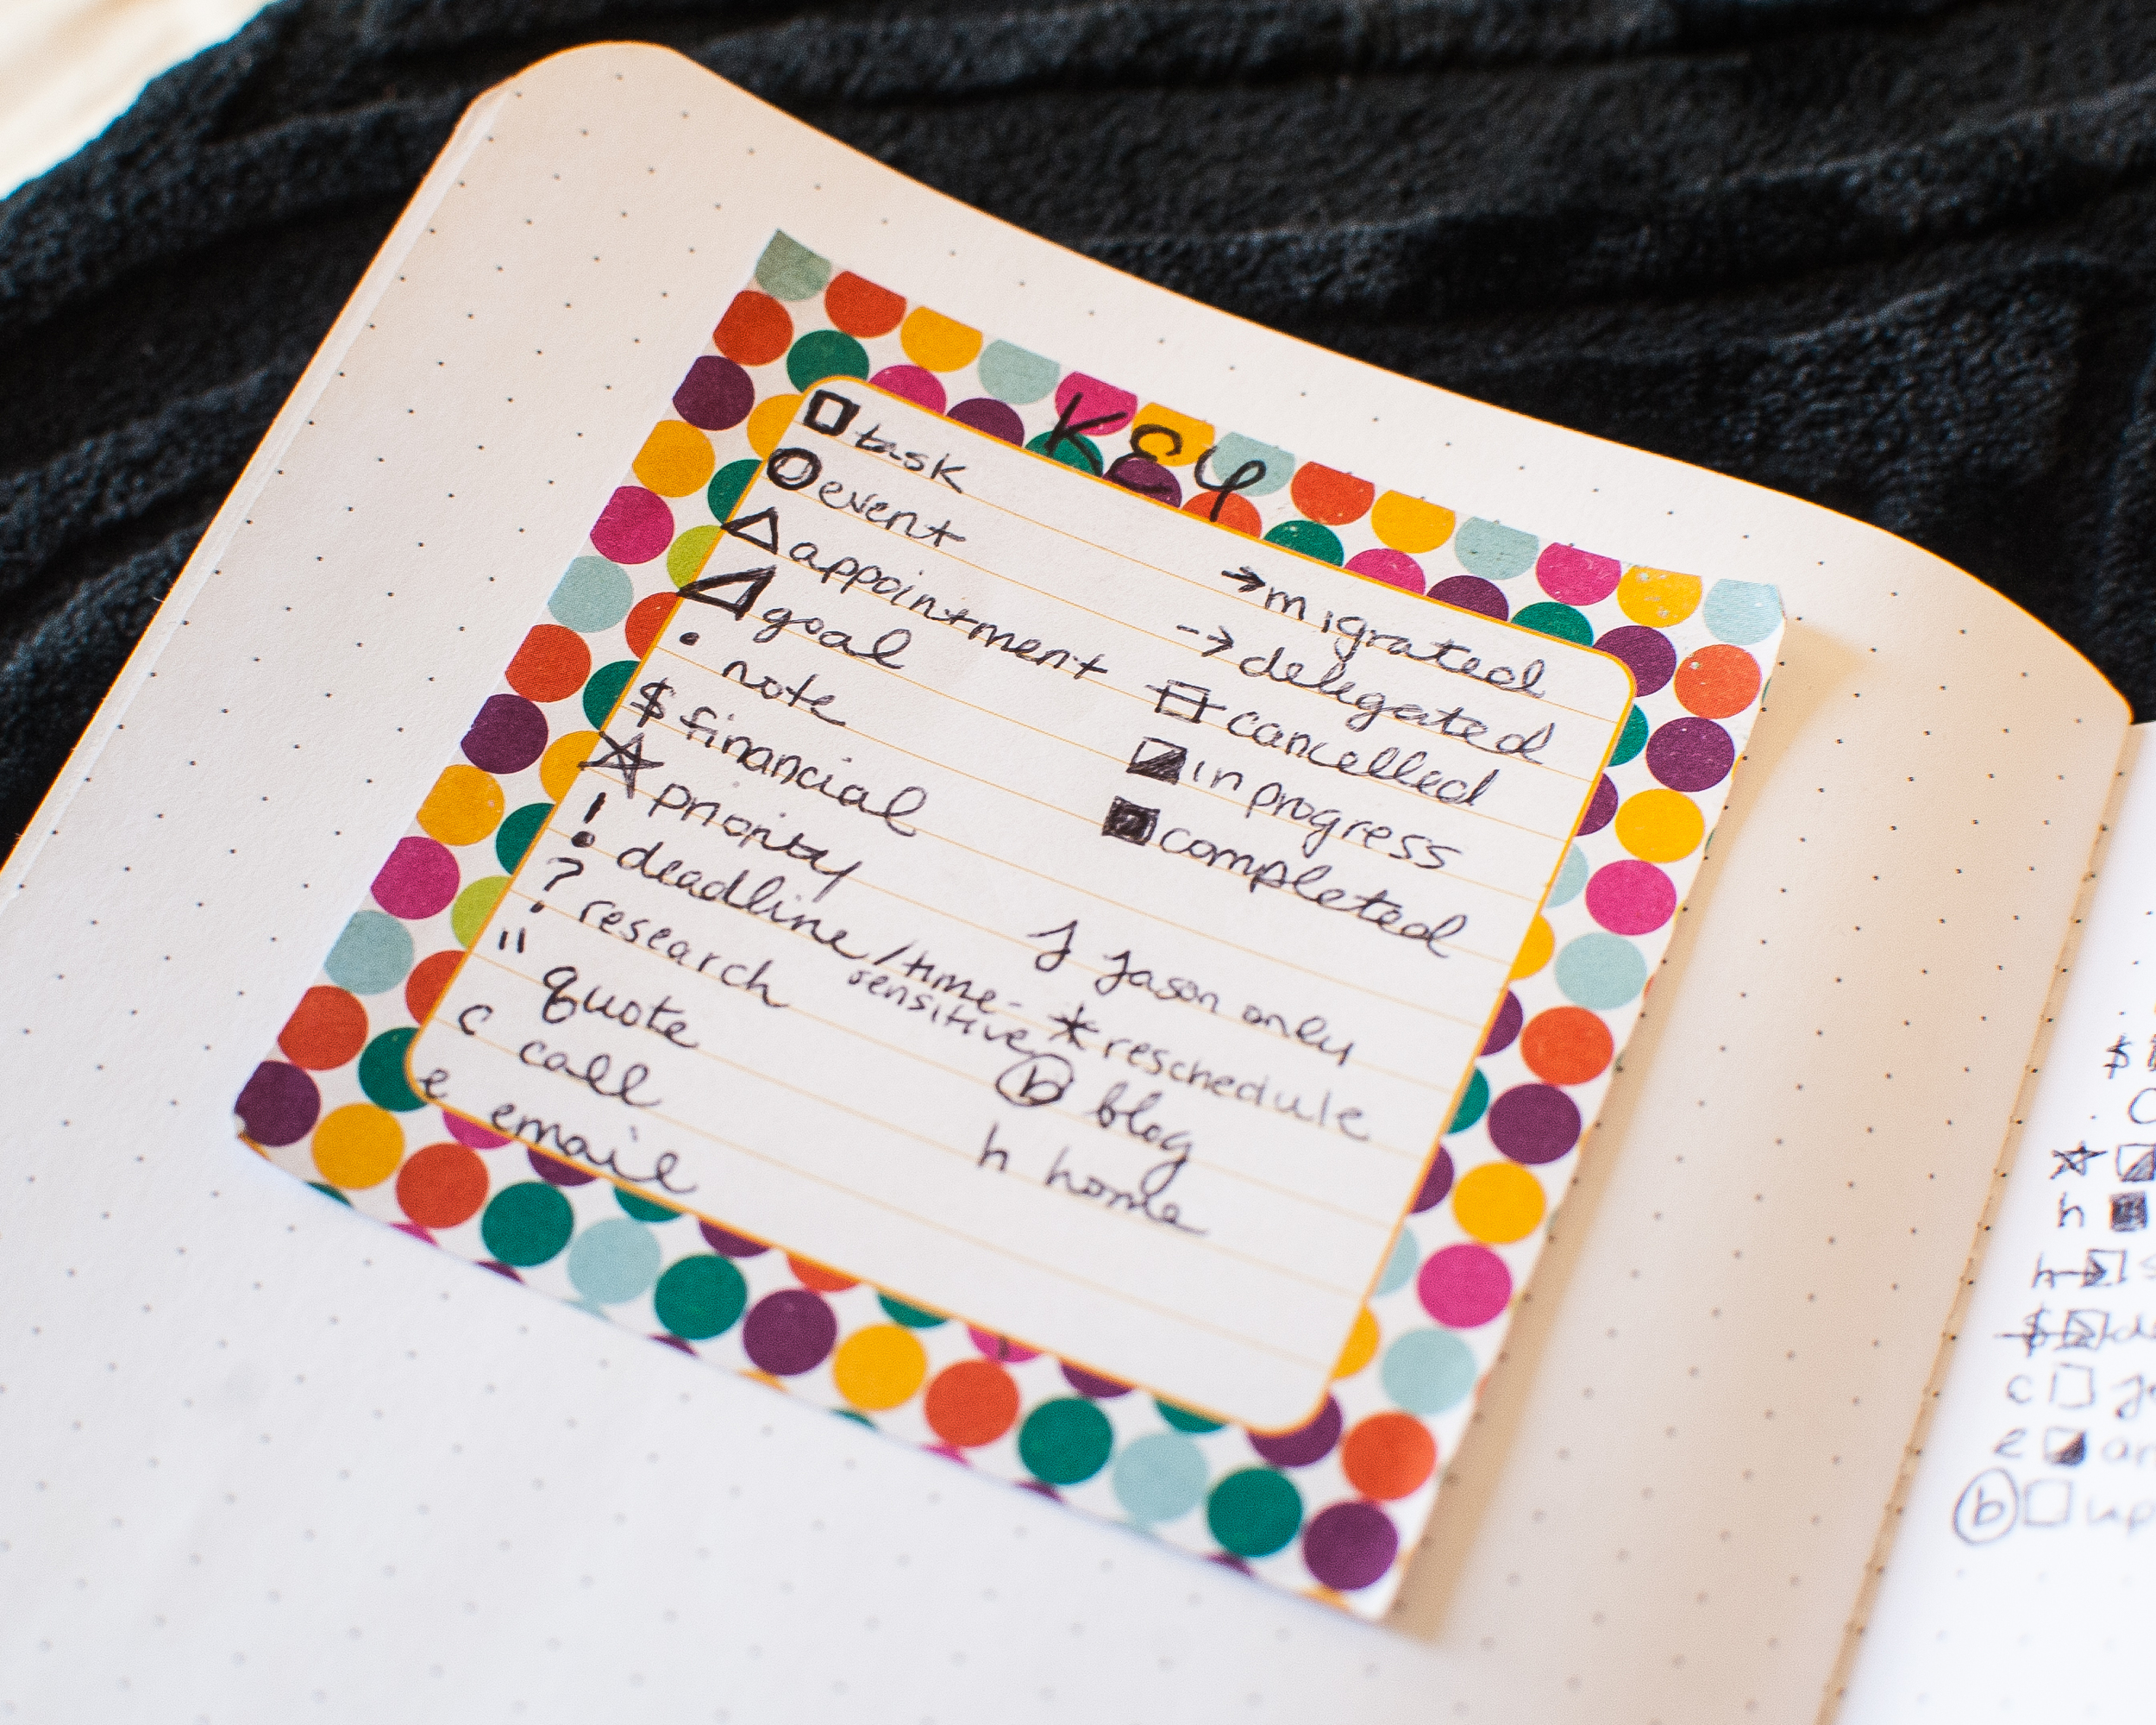 Check out My Bullet Journal Key on PlantBasedBride.com and get started bullet journalling today!